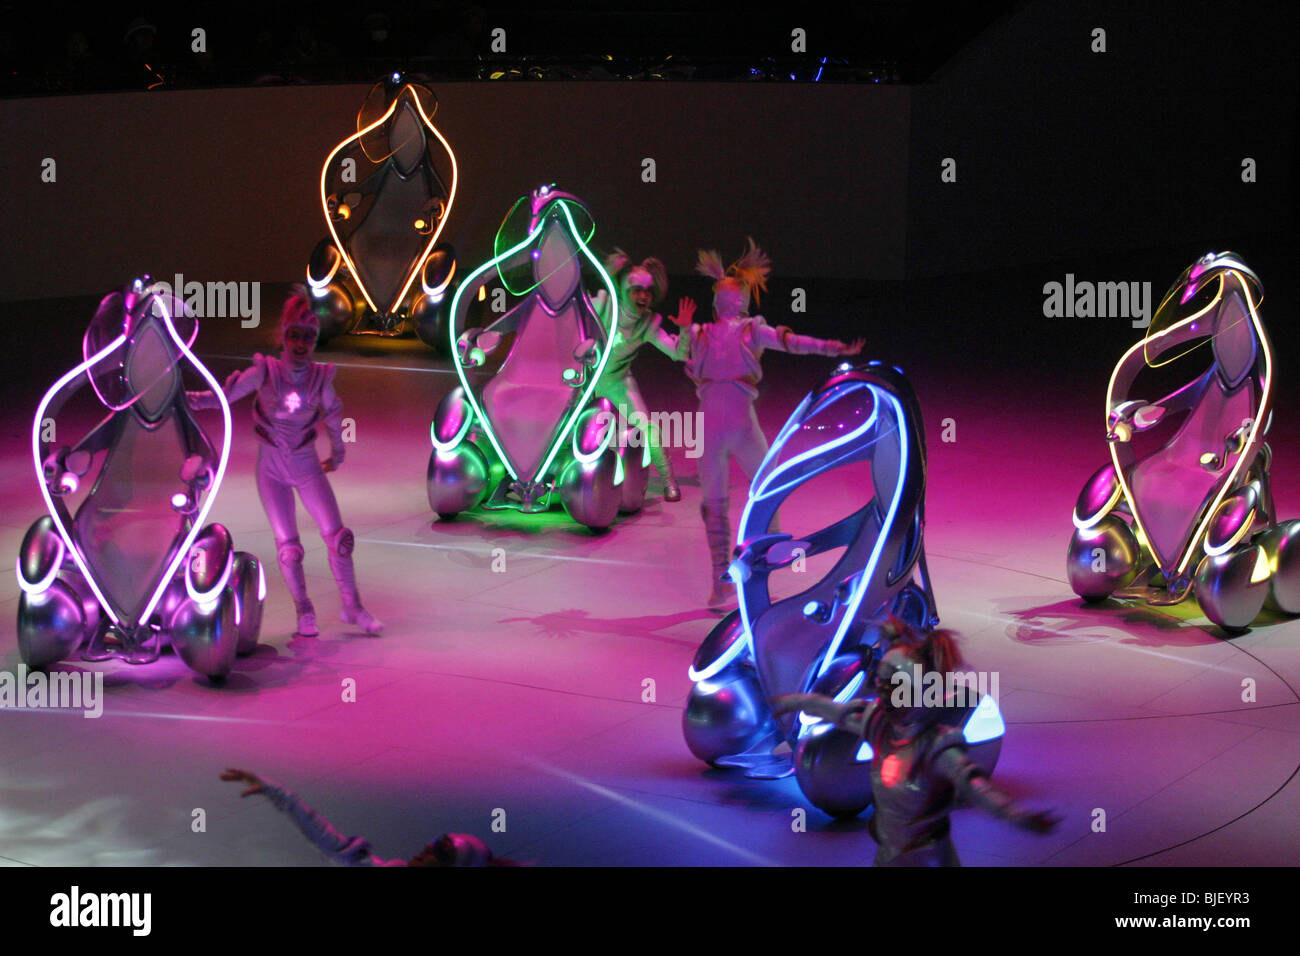 Toyota 'i-unit' concept vehicles and dancers perform in a show at the Toyota Pavilion, at World Expo 2005, - Stock Image